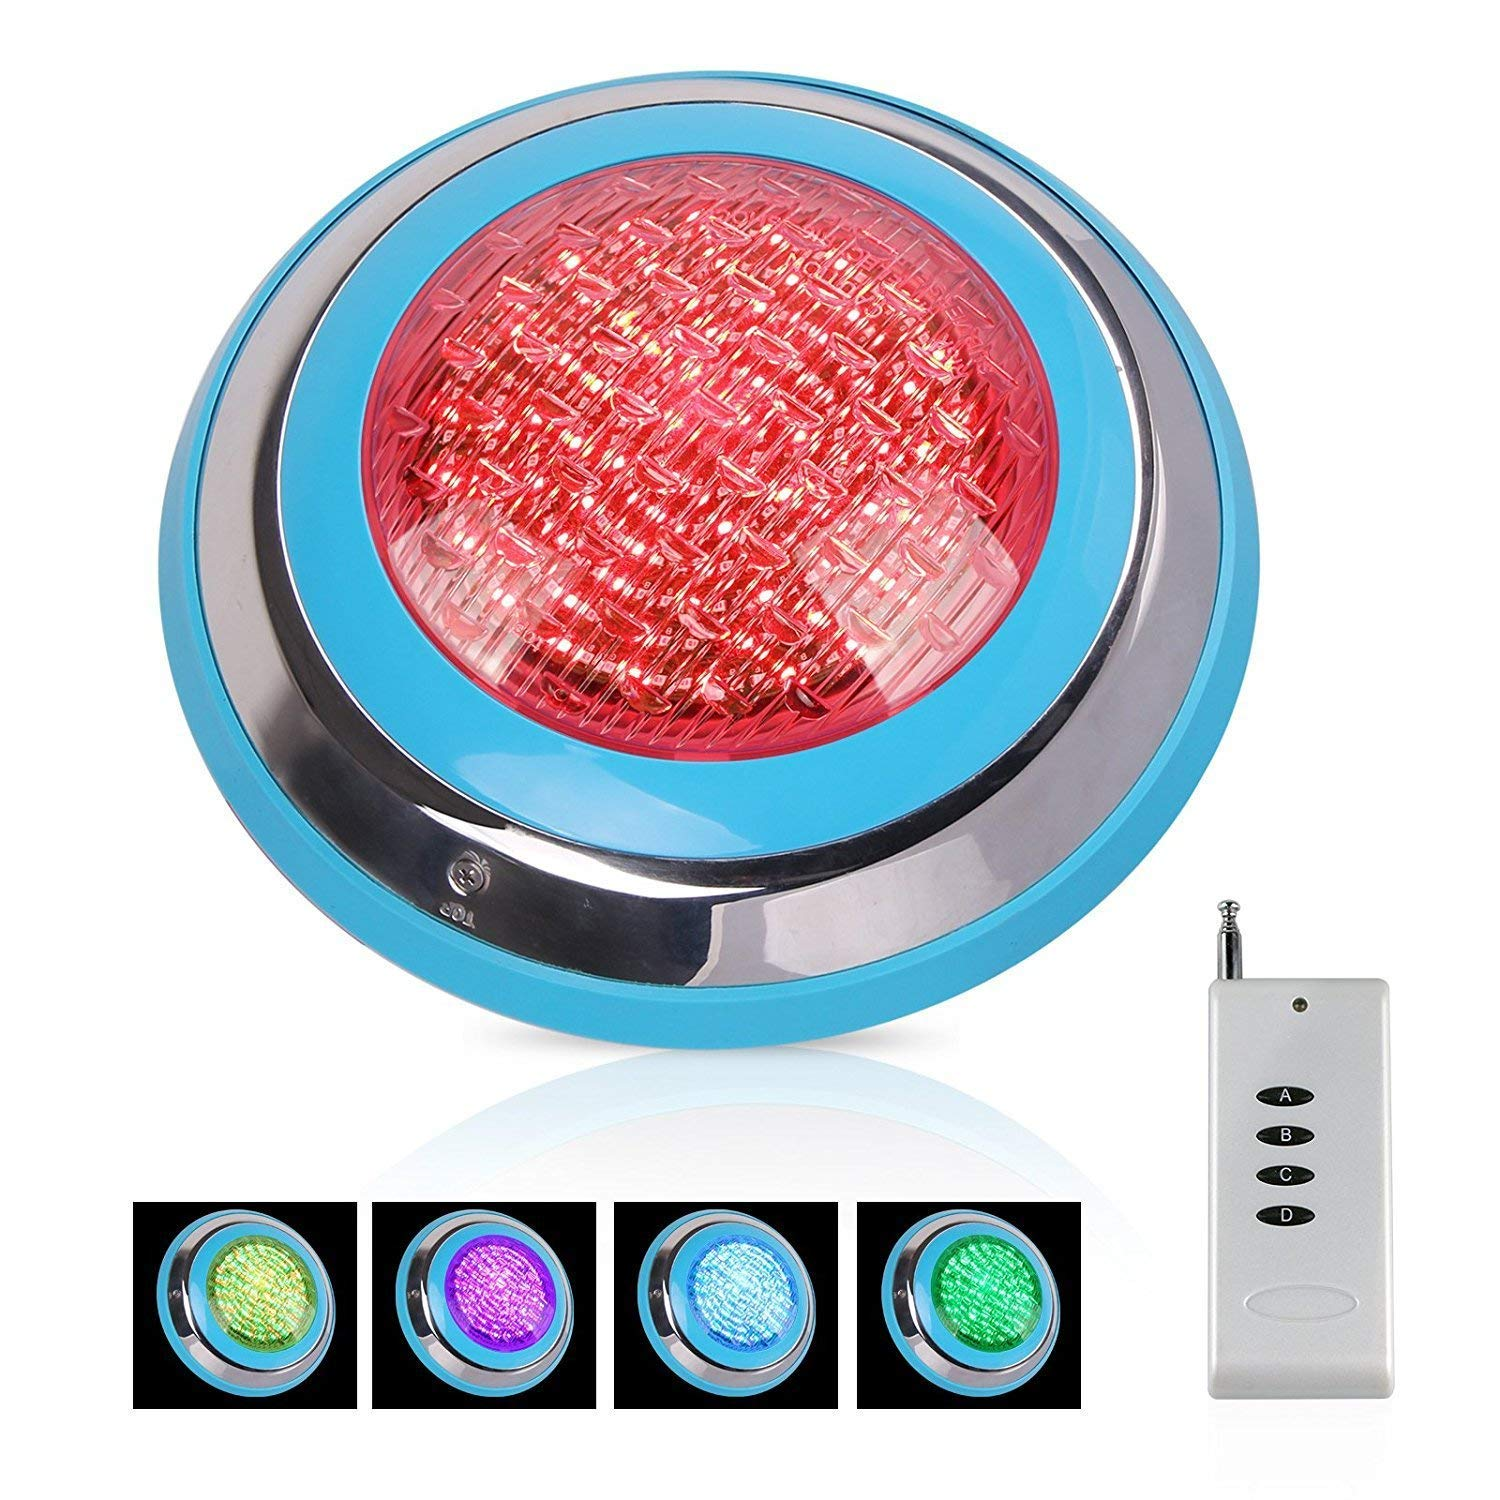 TOPLANET 48w Led Piscina Iluminacion Piscina Led Pool Light RGB Impermeable IP68 Control Remoto para Swimming